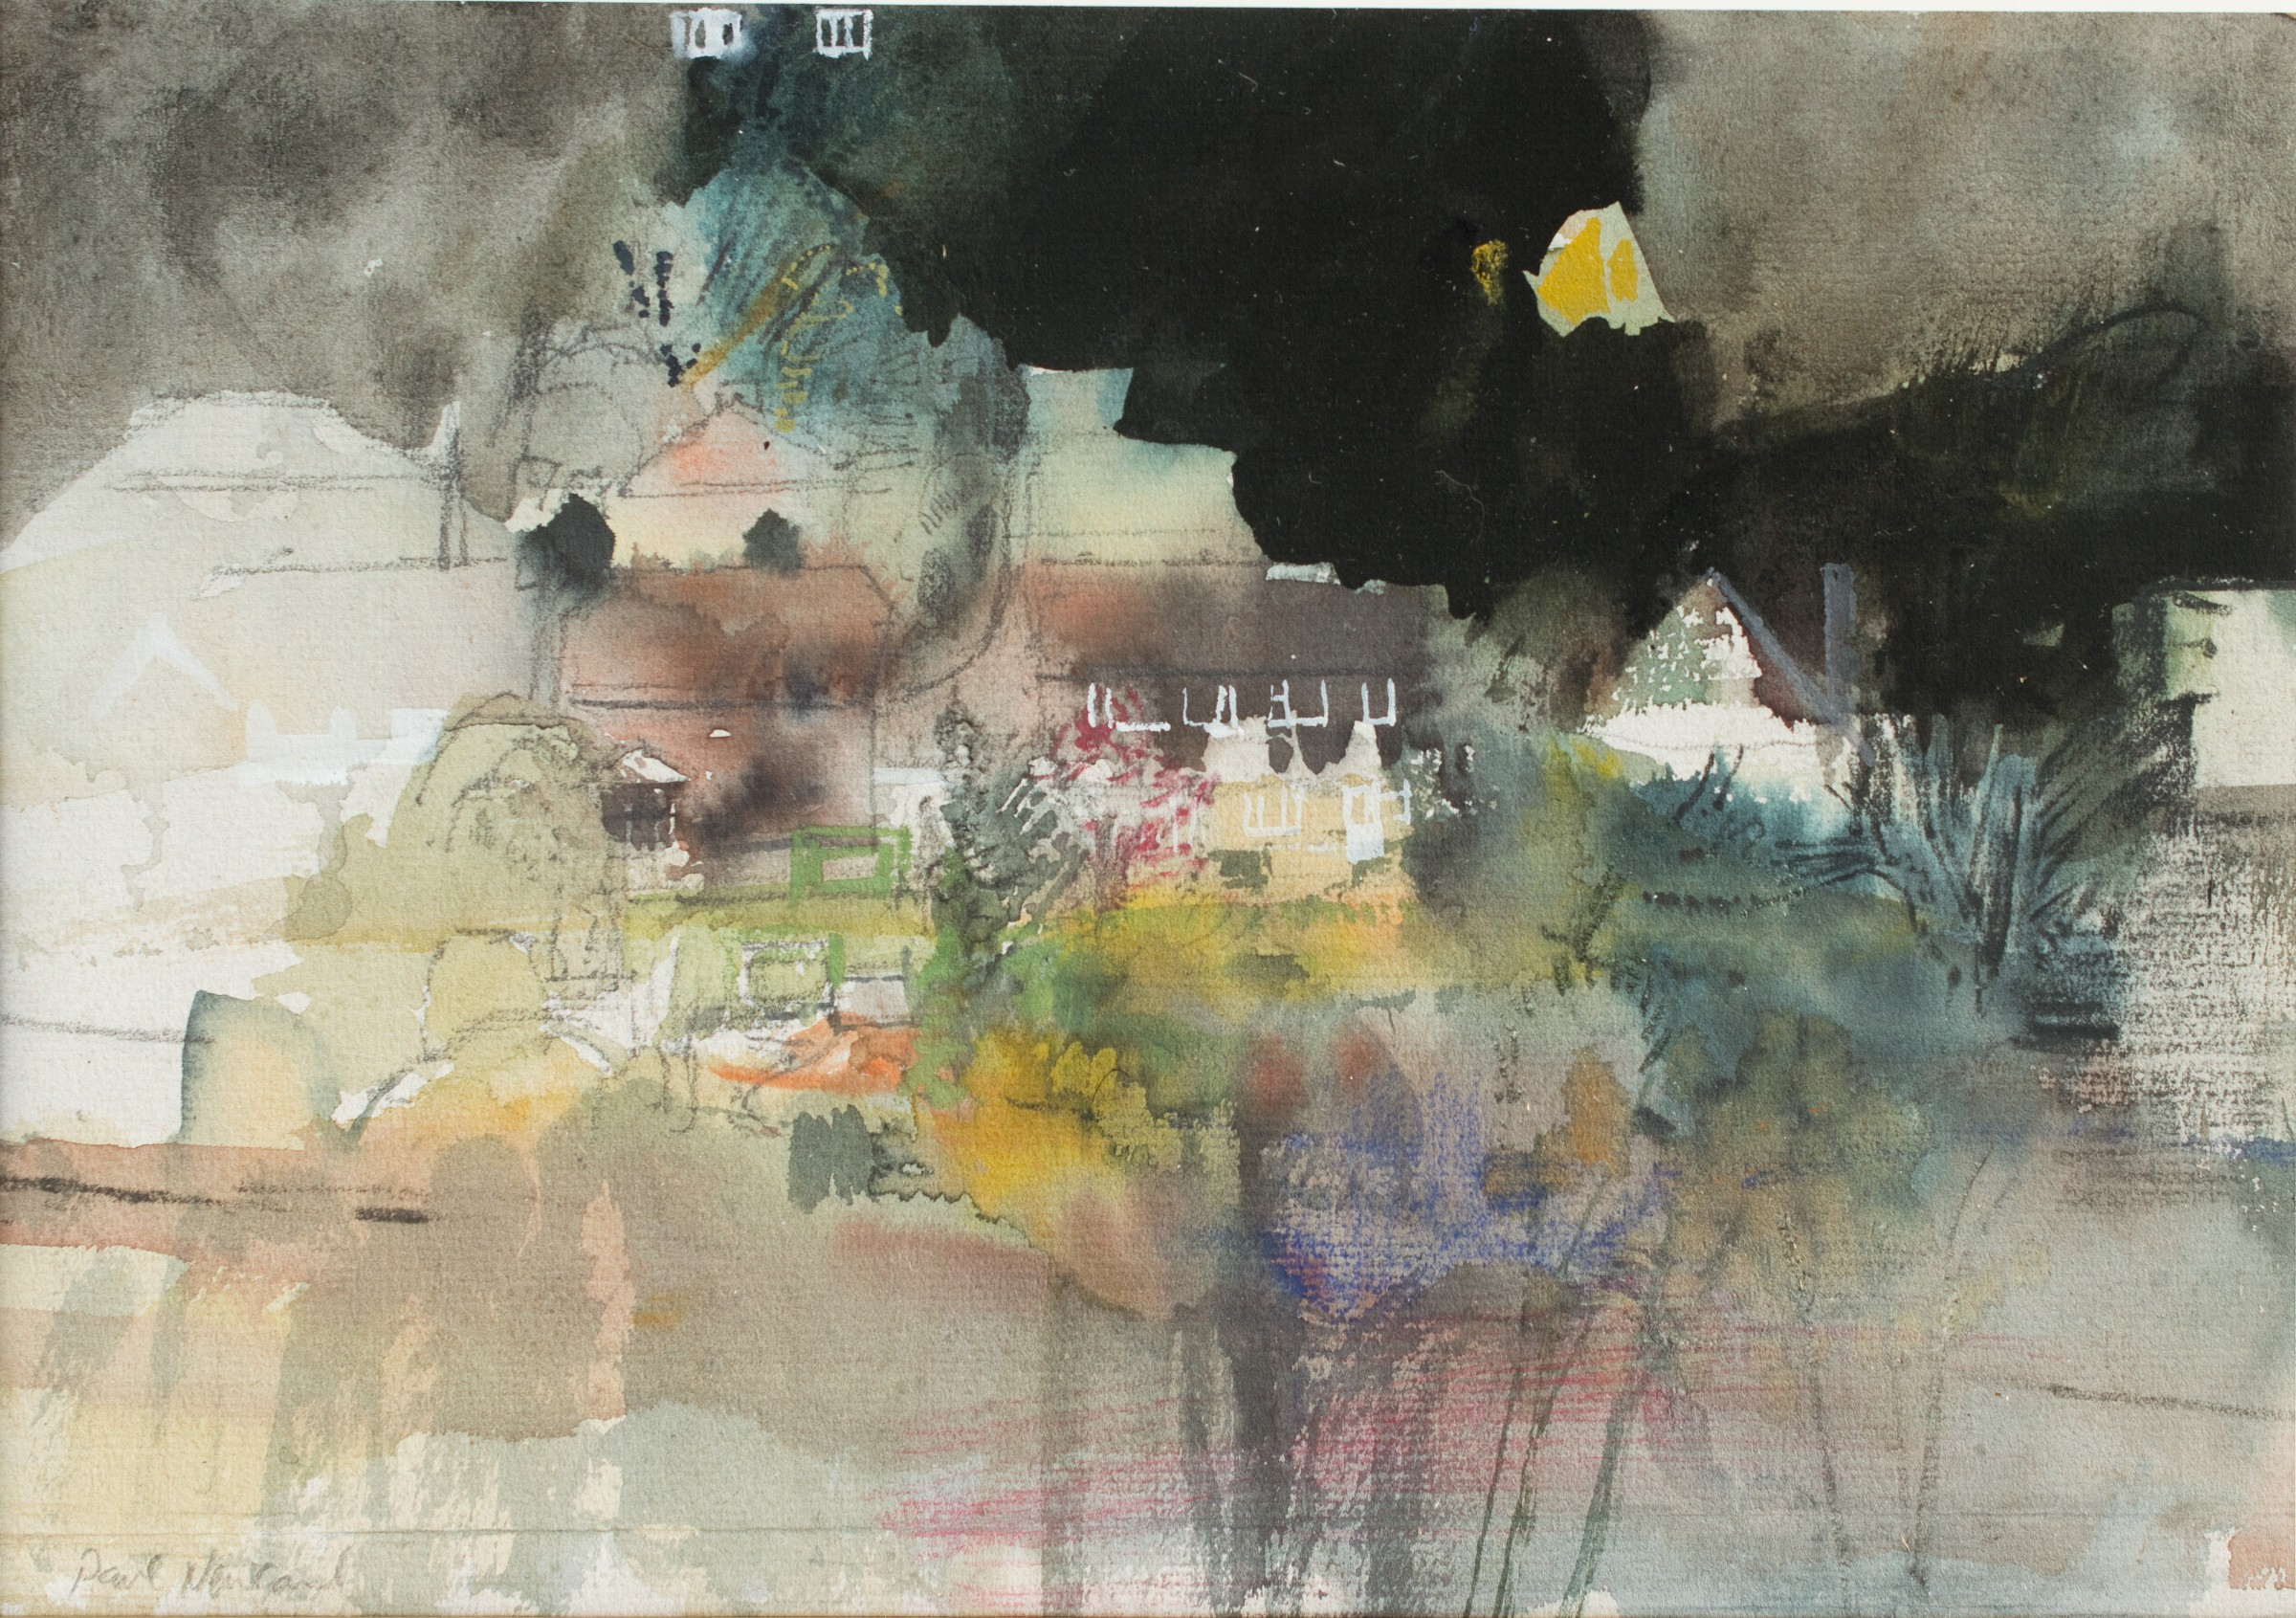 <span class=&#34;link fancybox-details-link&#34;><a href=&#34;/artists/87-paul-newland/works/10043-paul-newland-the-line-into-town-dusk/&#34;>View Detail Page</a></span><div class=&#34;artist&#34;><span class=&#34;artist&#34;><strong>Paul Newland</strong></span></div><div class=&#34;title&#34;><em> The Line into Town - Dusk</em></div><div class=&#34;medium&#34;>watercolour</div><div class=&#34;price&#34;>£350.00</div>